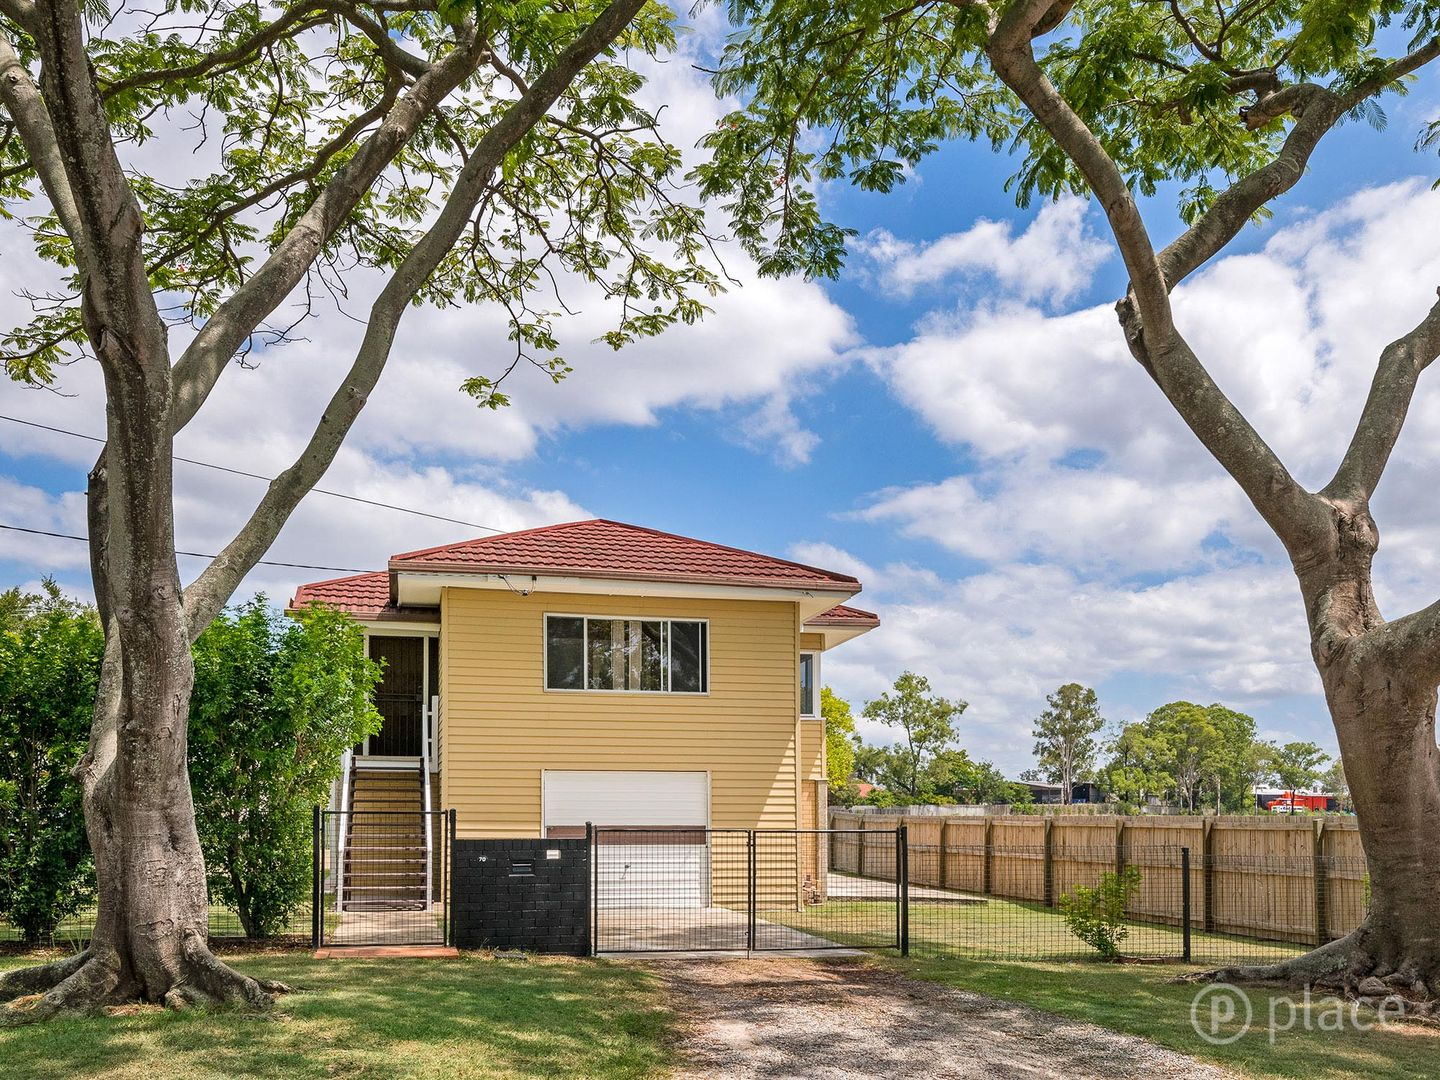 70 Price Street, Oxley QLD 4075, Image 0